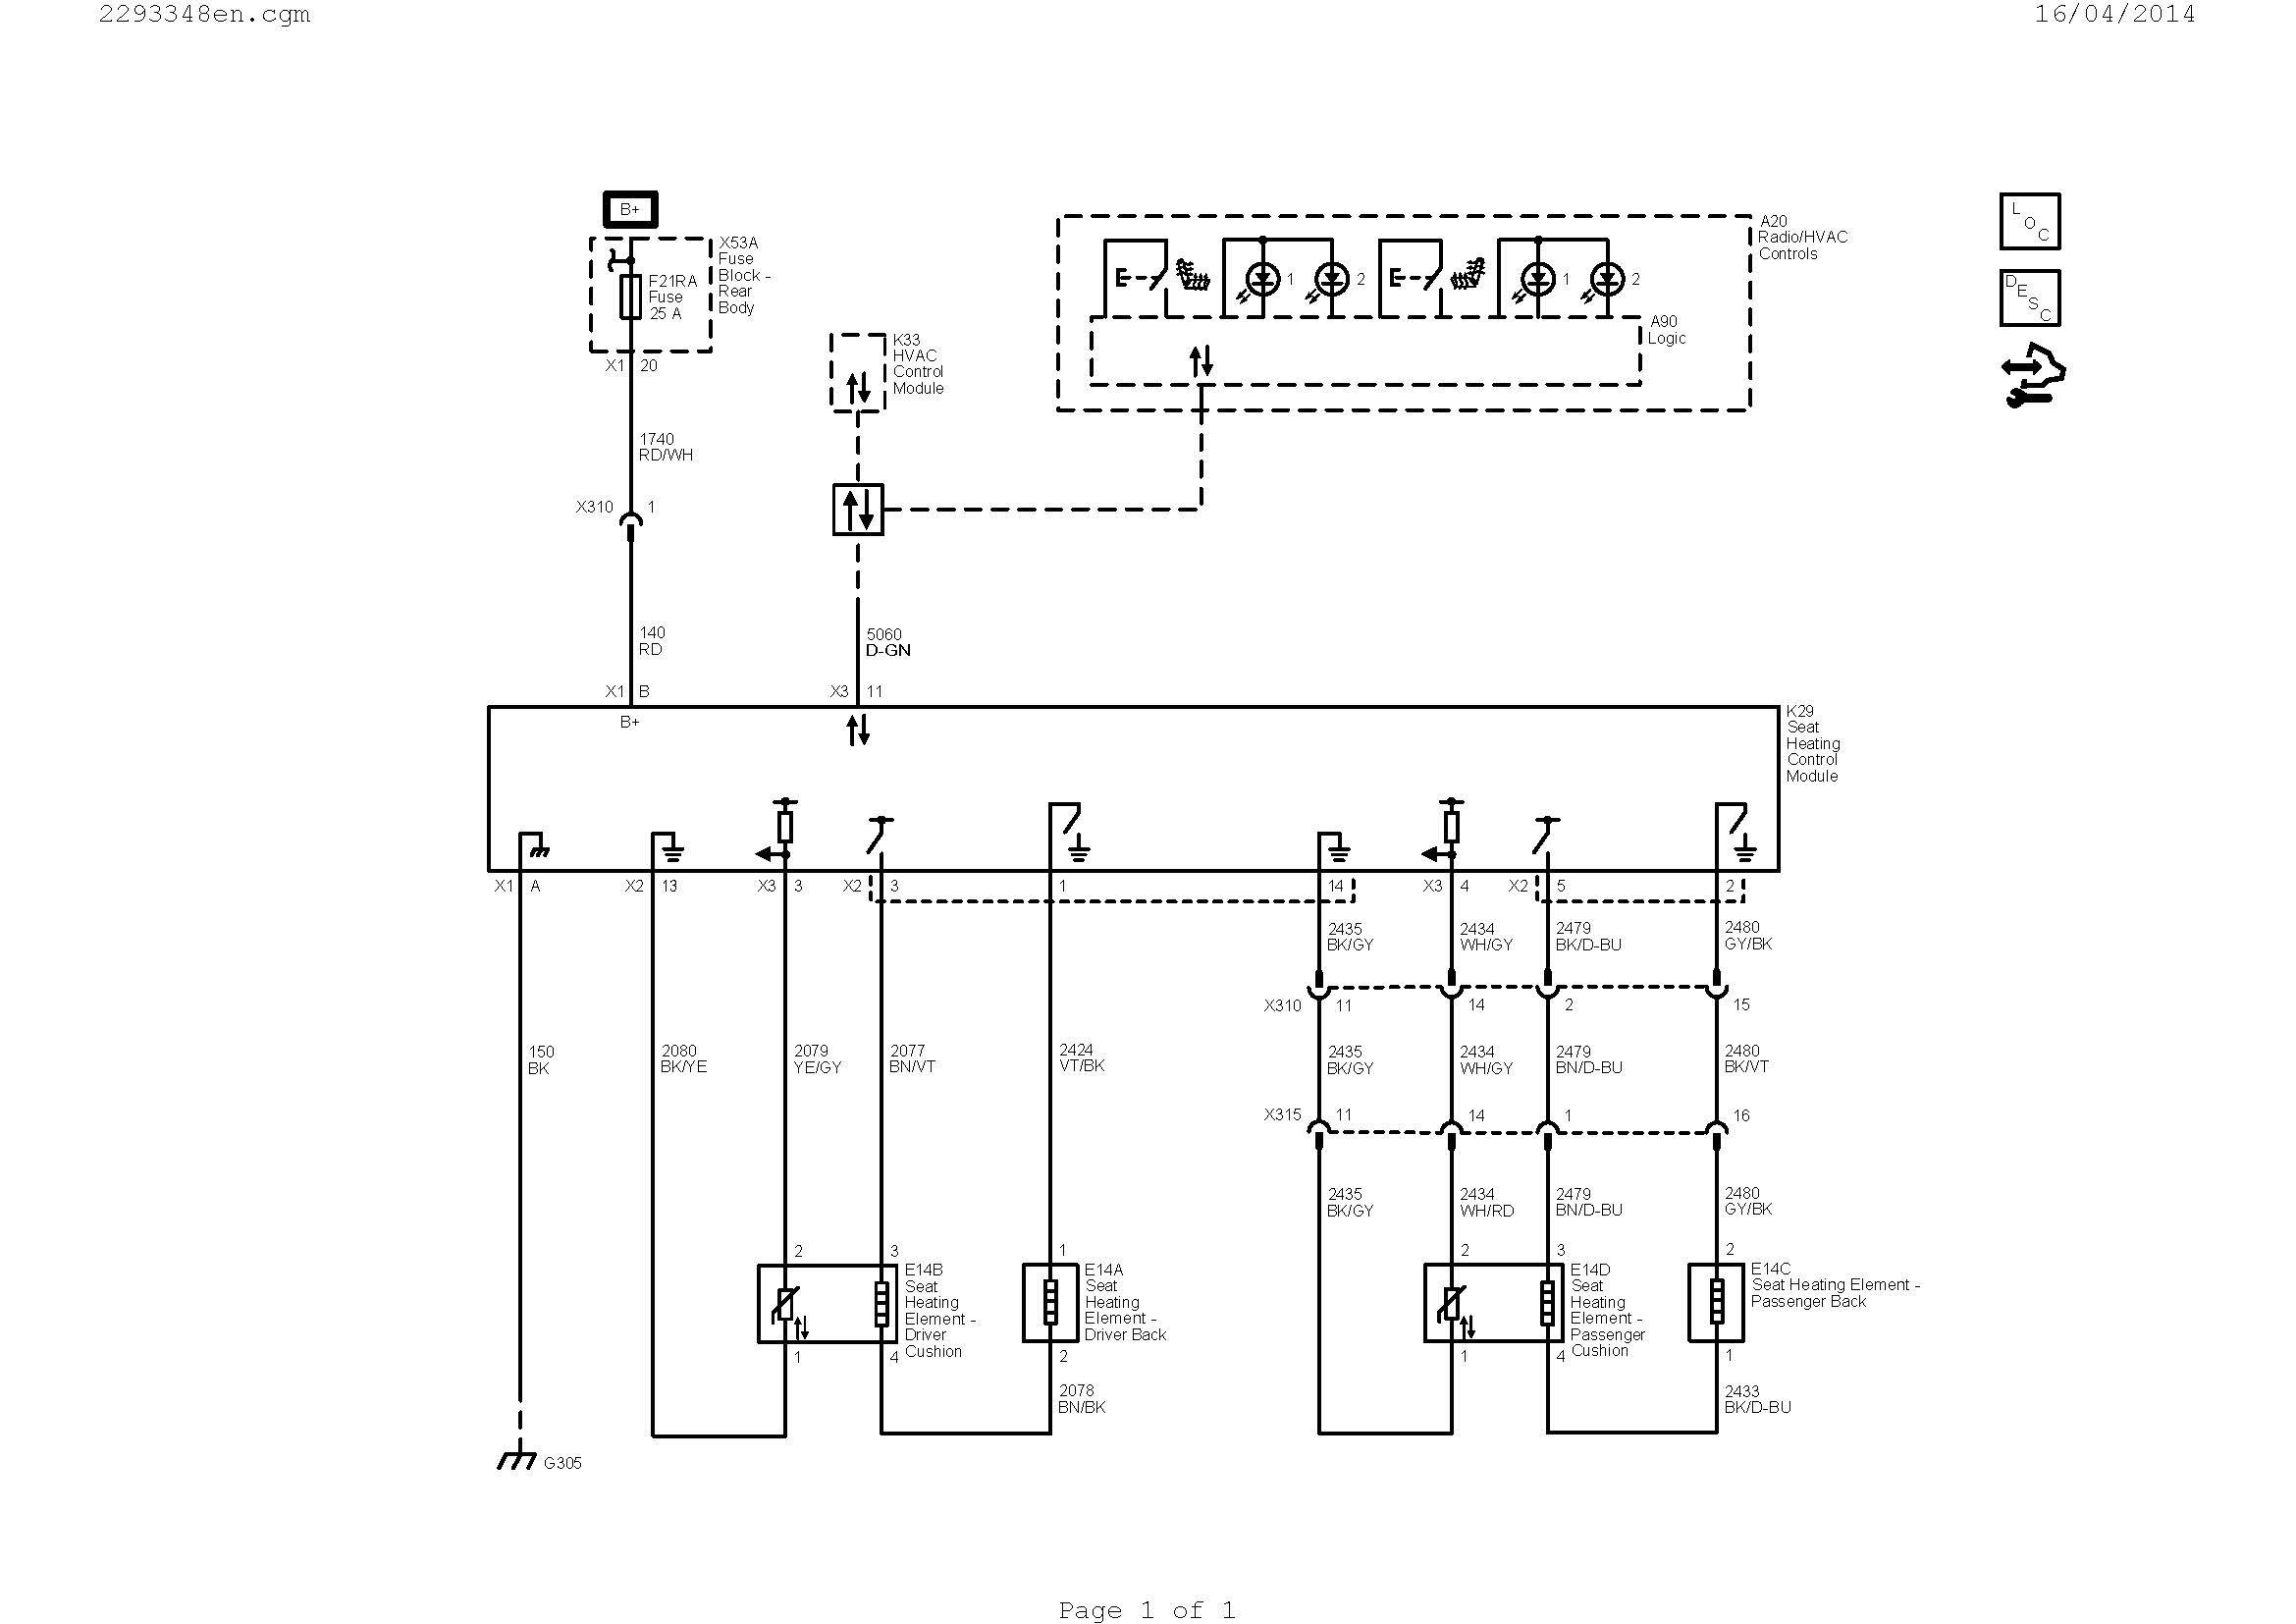 white rodgers 50e47 843 wiring diagram Download-Control Relay Wiring Diagram Collection White Rodgers 50e47 843 Wiring Diagram Image 19-a